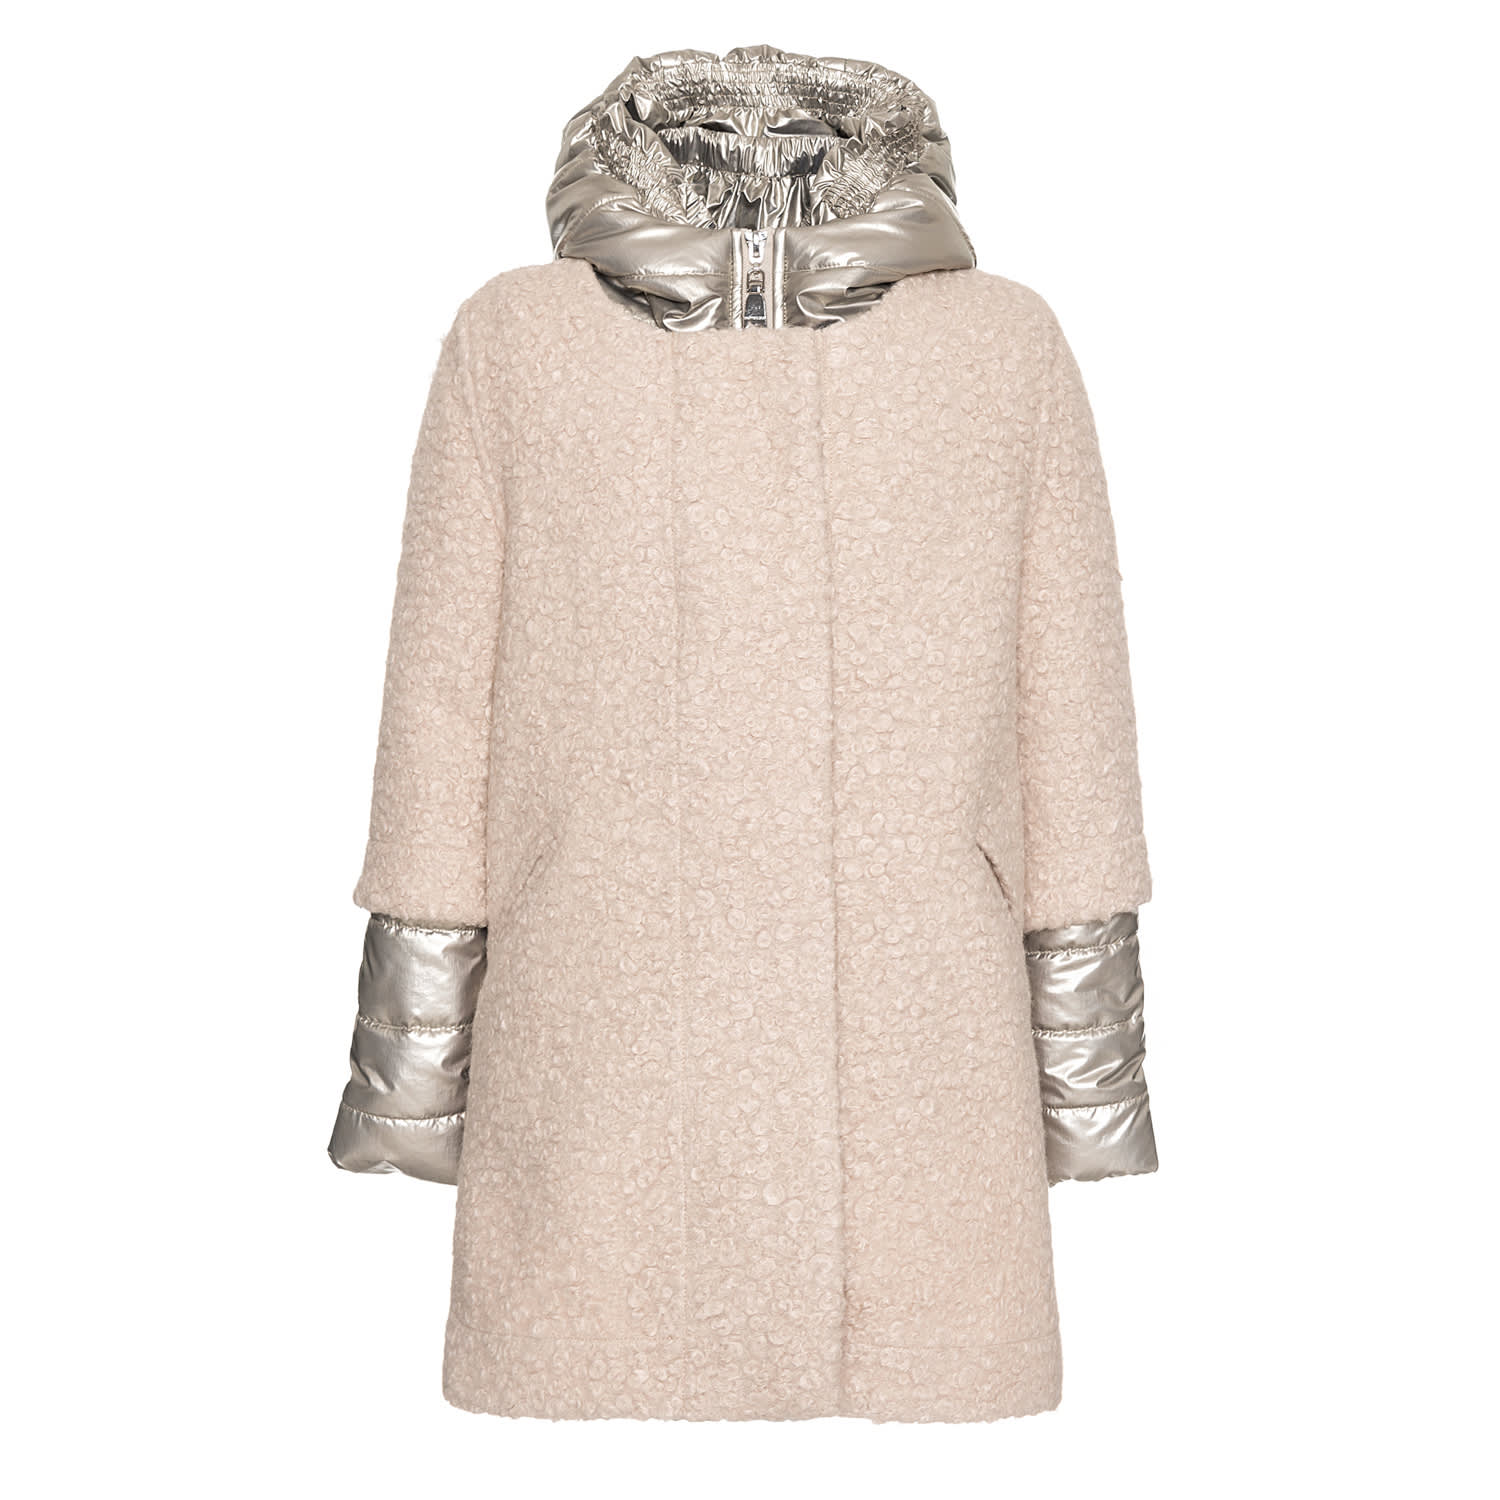 Monnalisa Double Boucle Winter Coat from MonnalisaComposition: 50% Polyester, 50% Polyamide